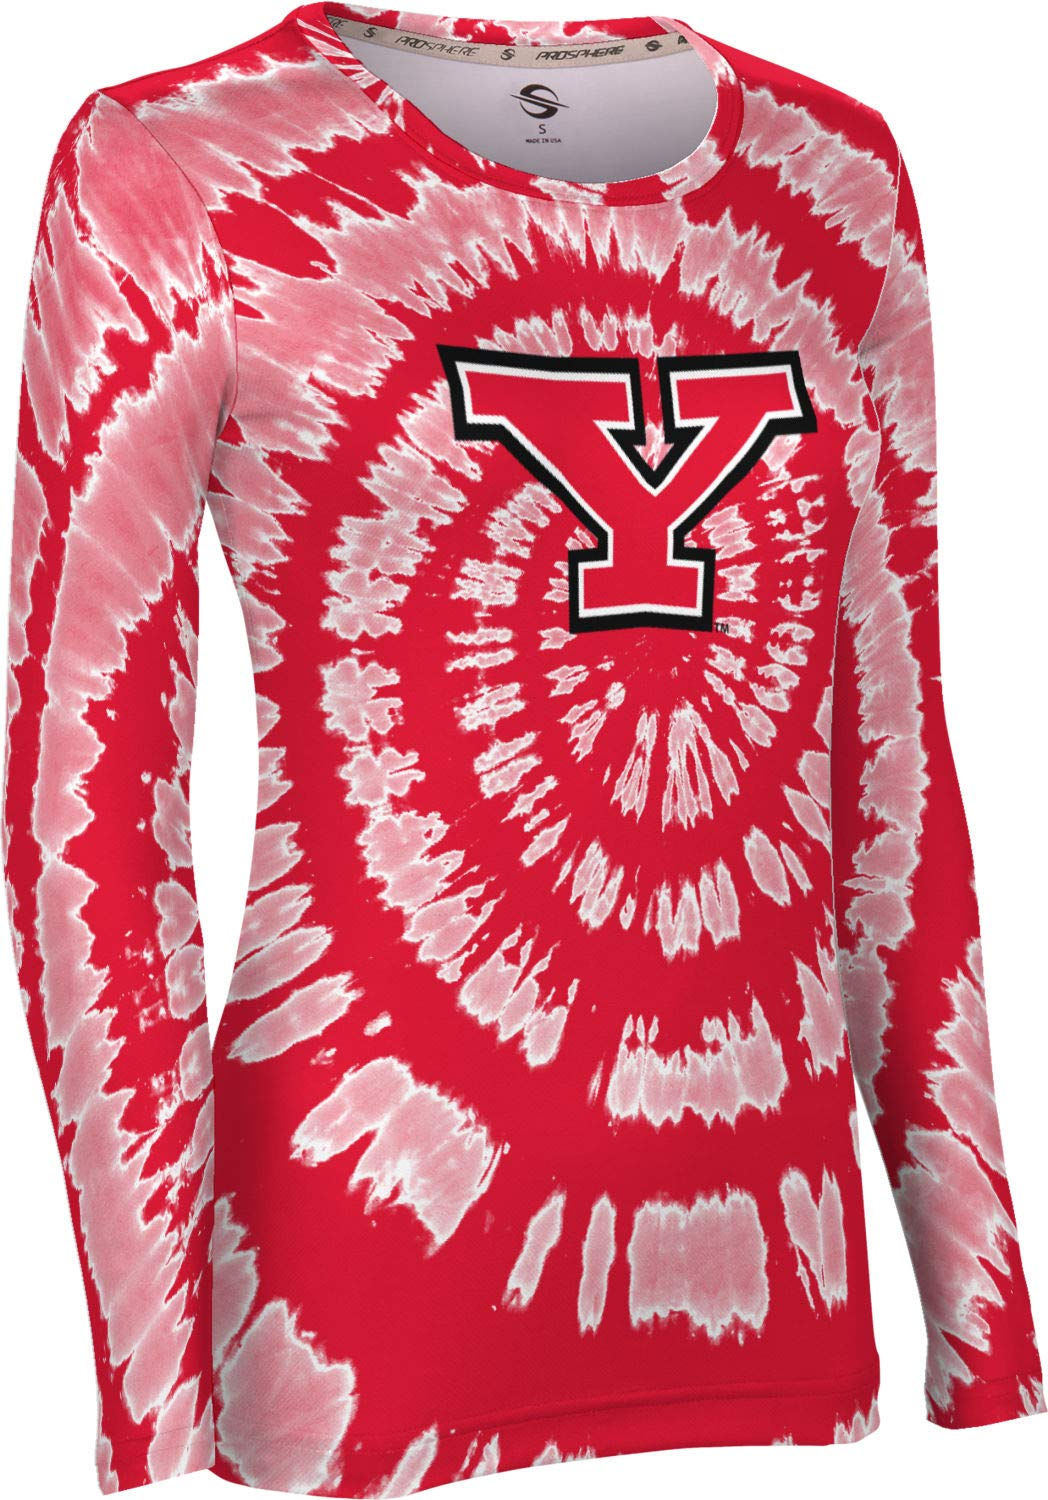 Tie Dye ProSphere Youngstown State University Mens Performance T-Shirt